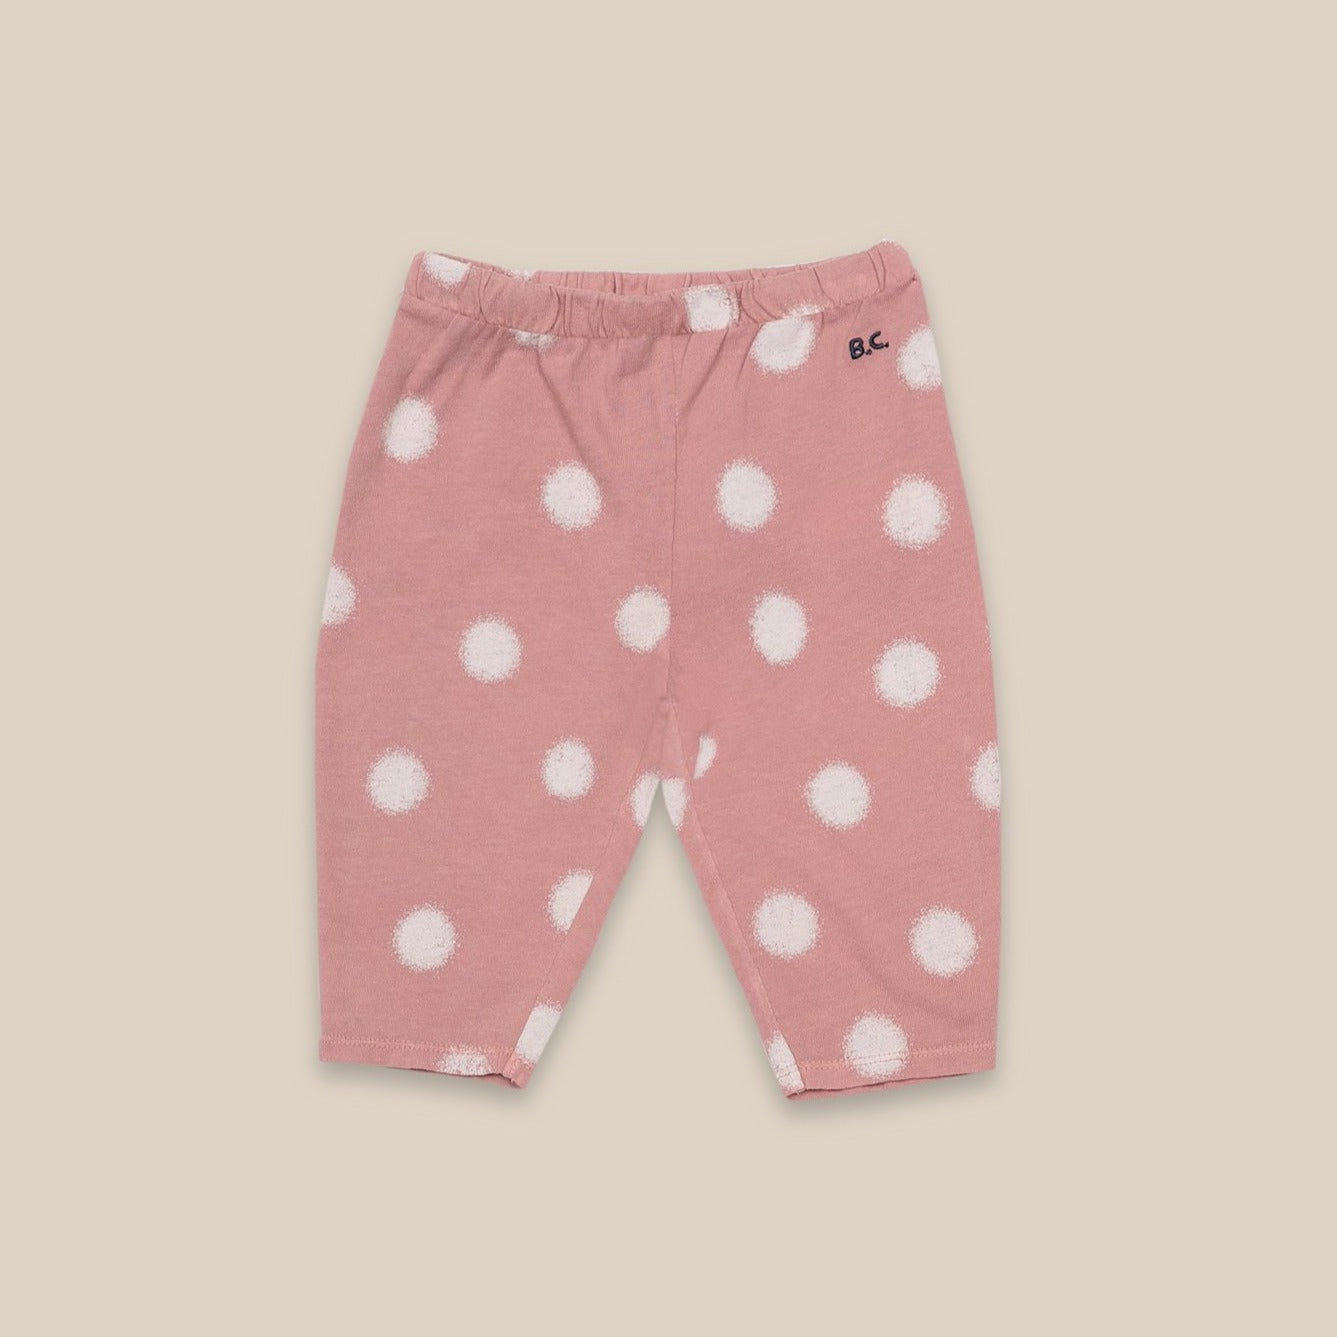 Bobo Choses spray dots baby leggarit, rose tan